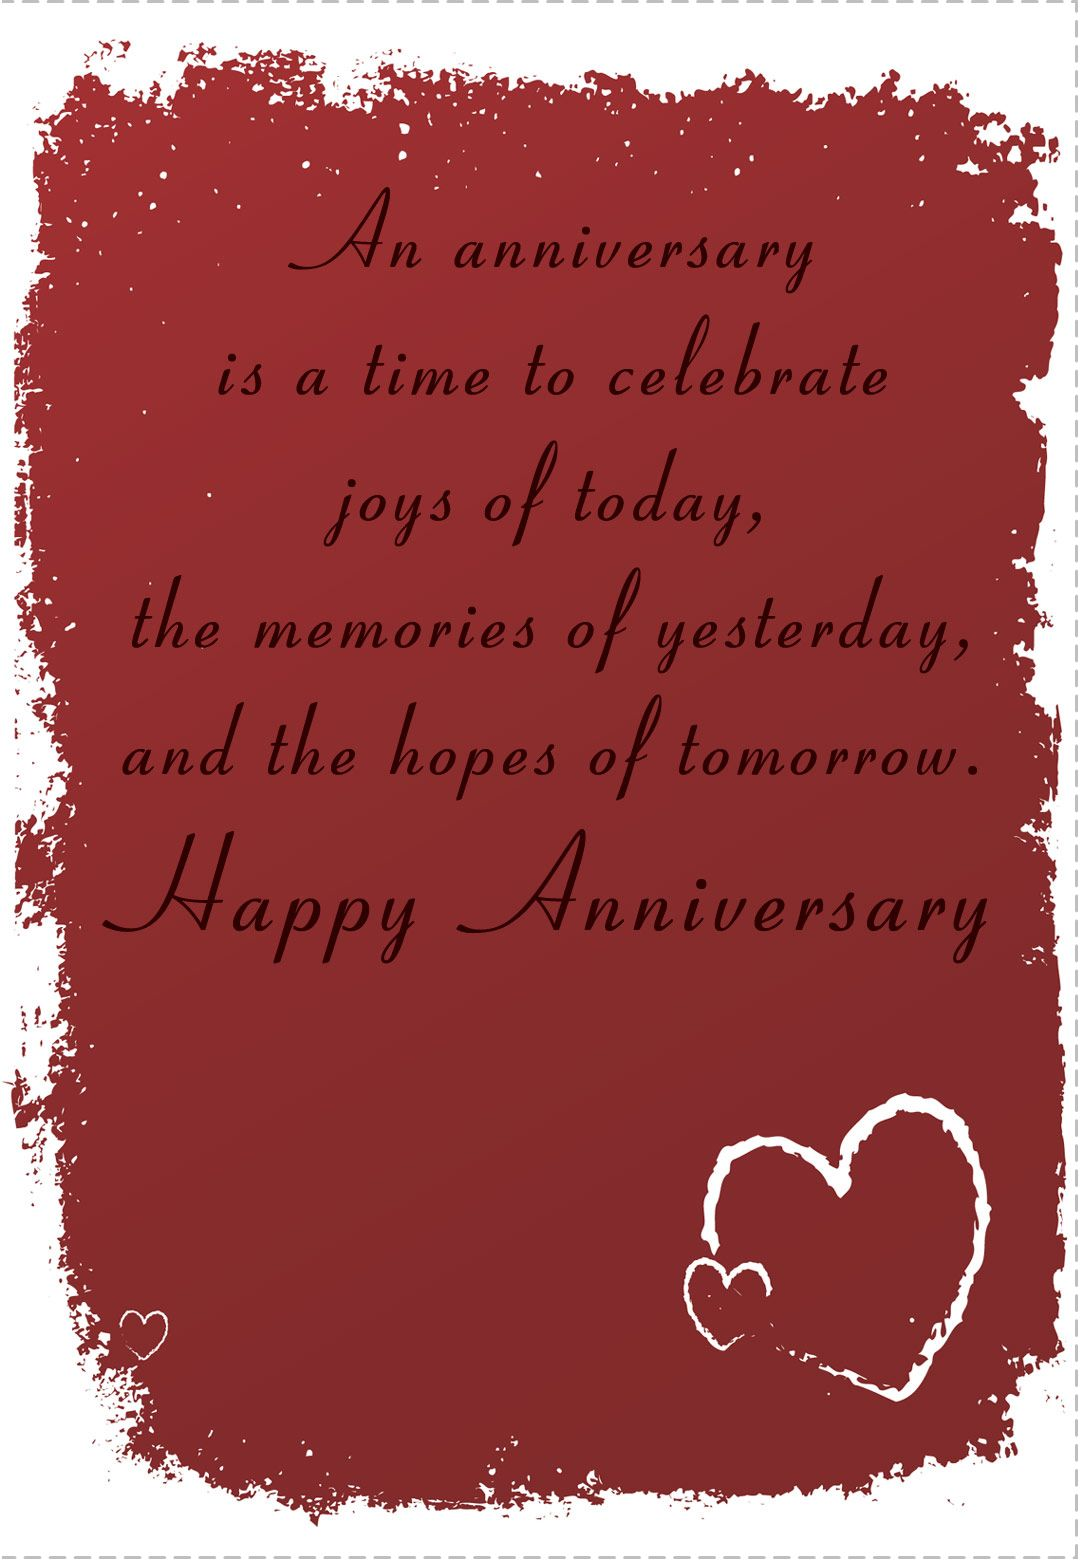 Free Printable U0027Time To Celebrateu0027 Anniversary Greeting Card  Free Printable Anniversary Cards For Parents